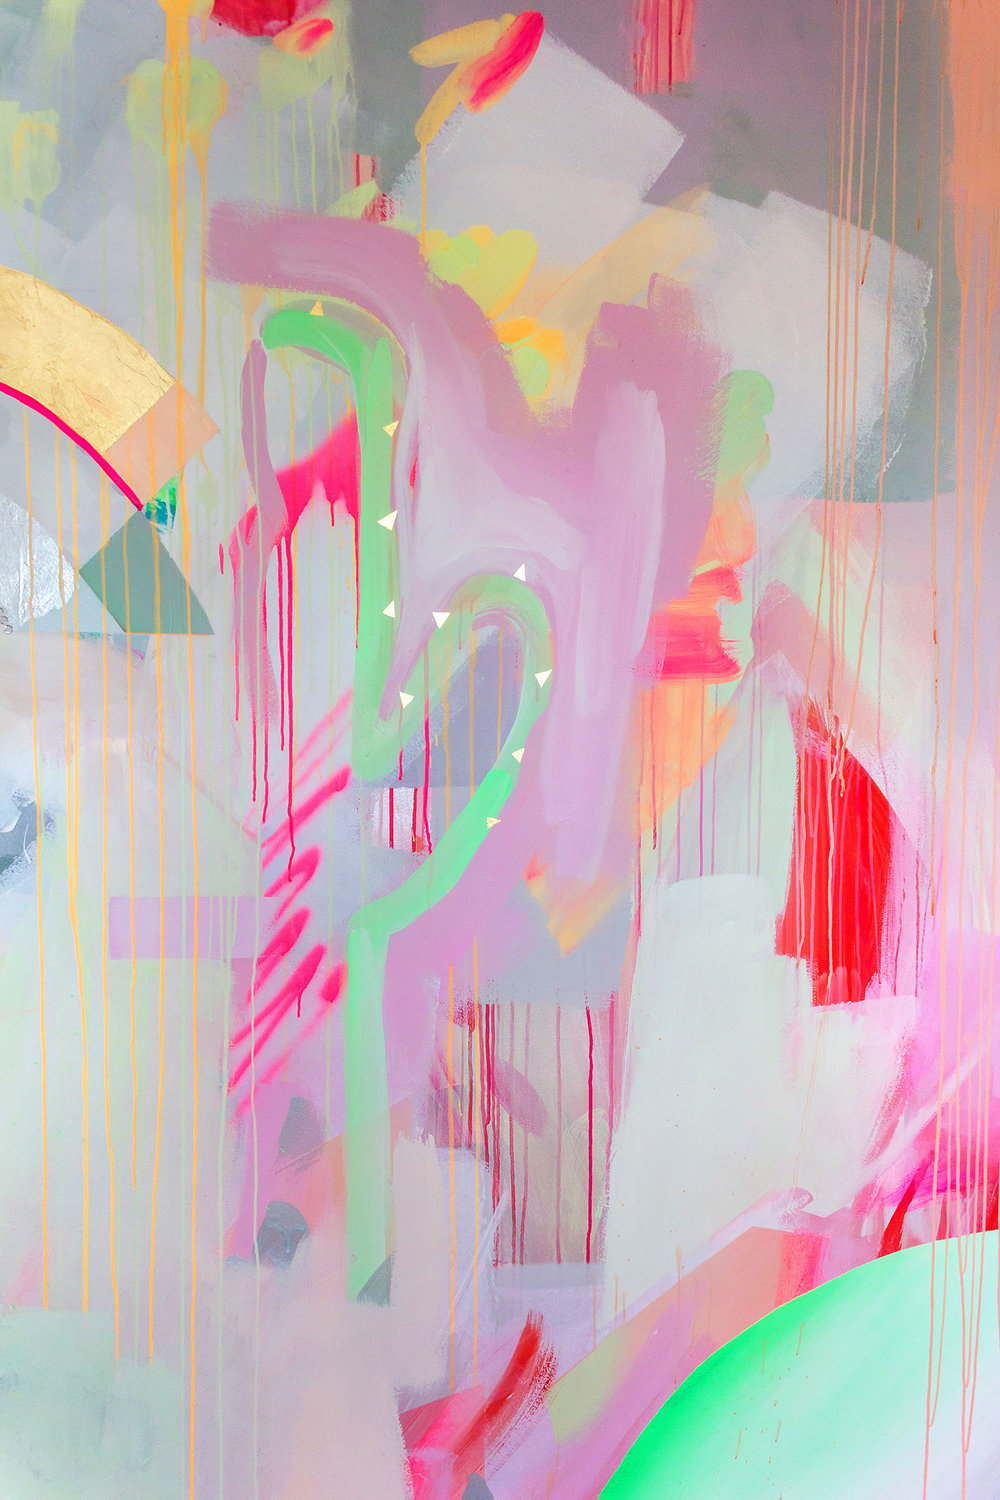 Close up of vibrant galaxy wall mural in bright neon colours, featuring metallic rainbow, spray painted cactus and gold leaf shapes.